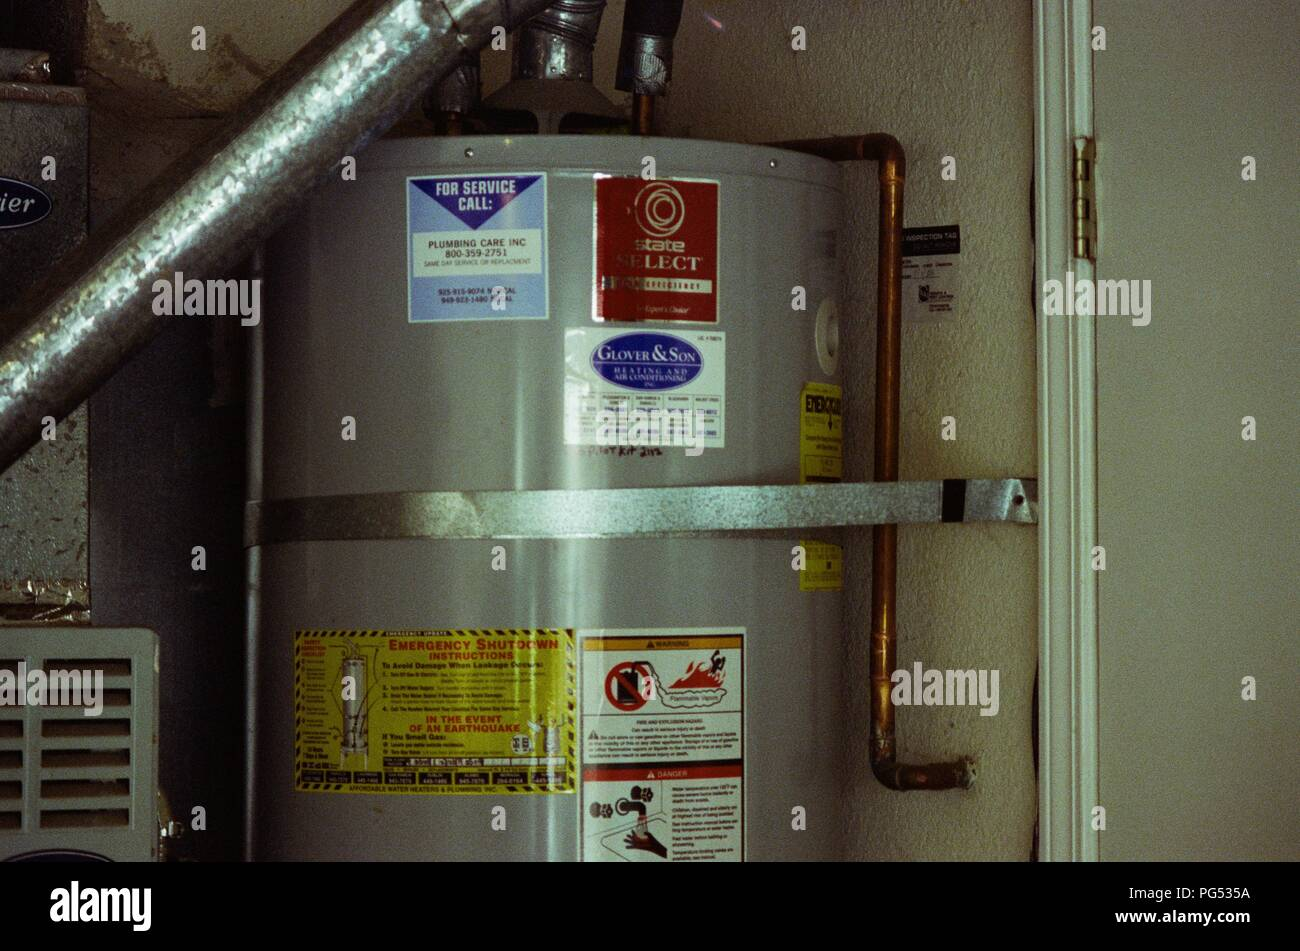 In the San Francisco Bay Area, a seismically active location, a residential hot water heater is connected to the wall using a metal tie-down to prevent the appliance from toppling over in the event of an earthquake, San Ramon, California, March 5, 2018. () - Stock Image